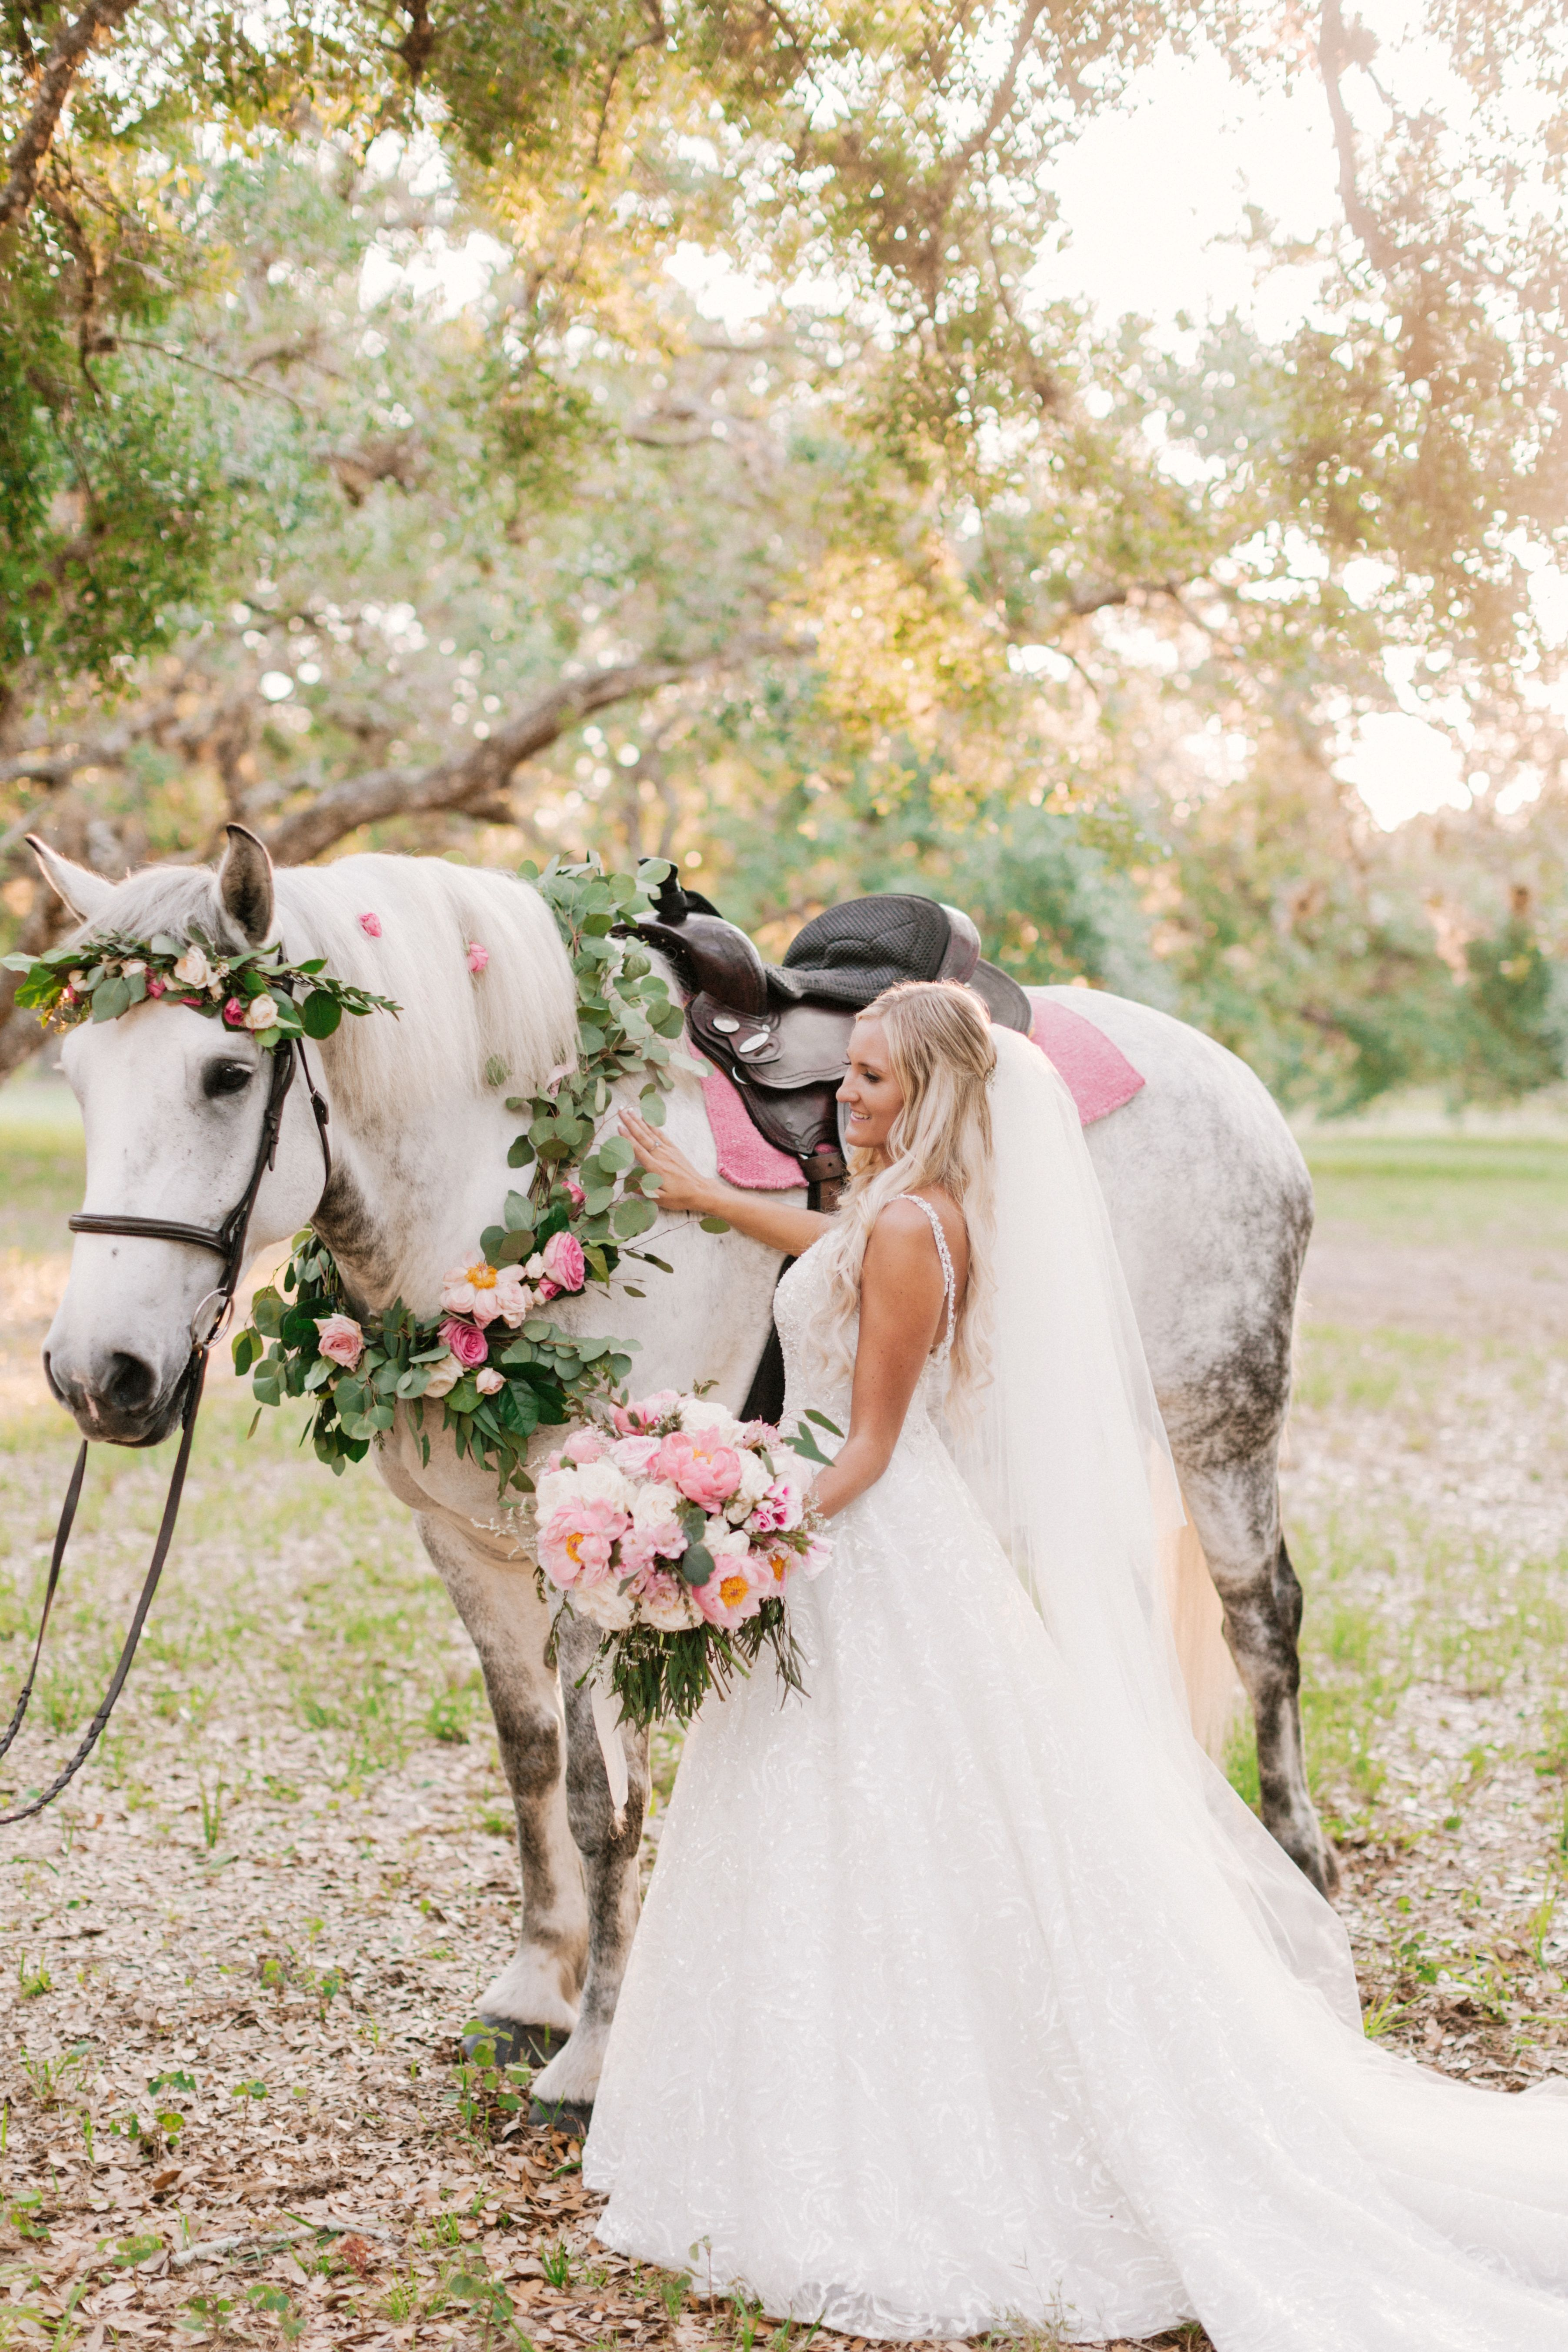 A Magical Fairytale Outdoor Wedding In Jasmine Couture Style